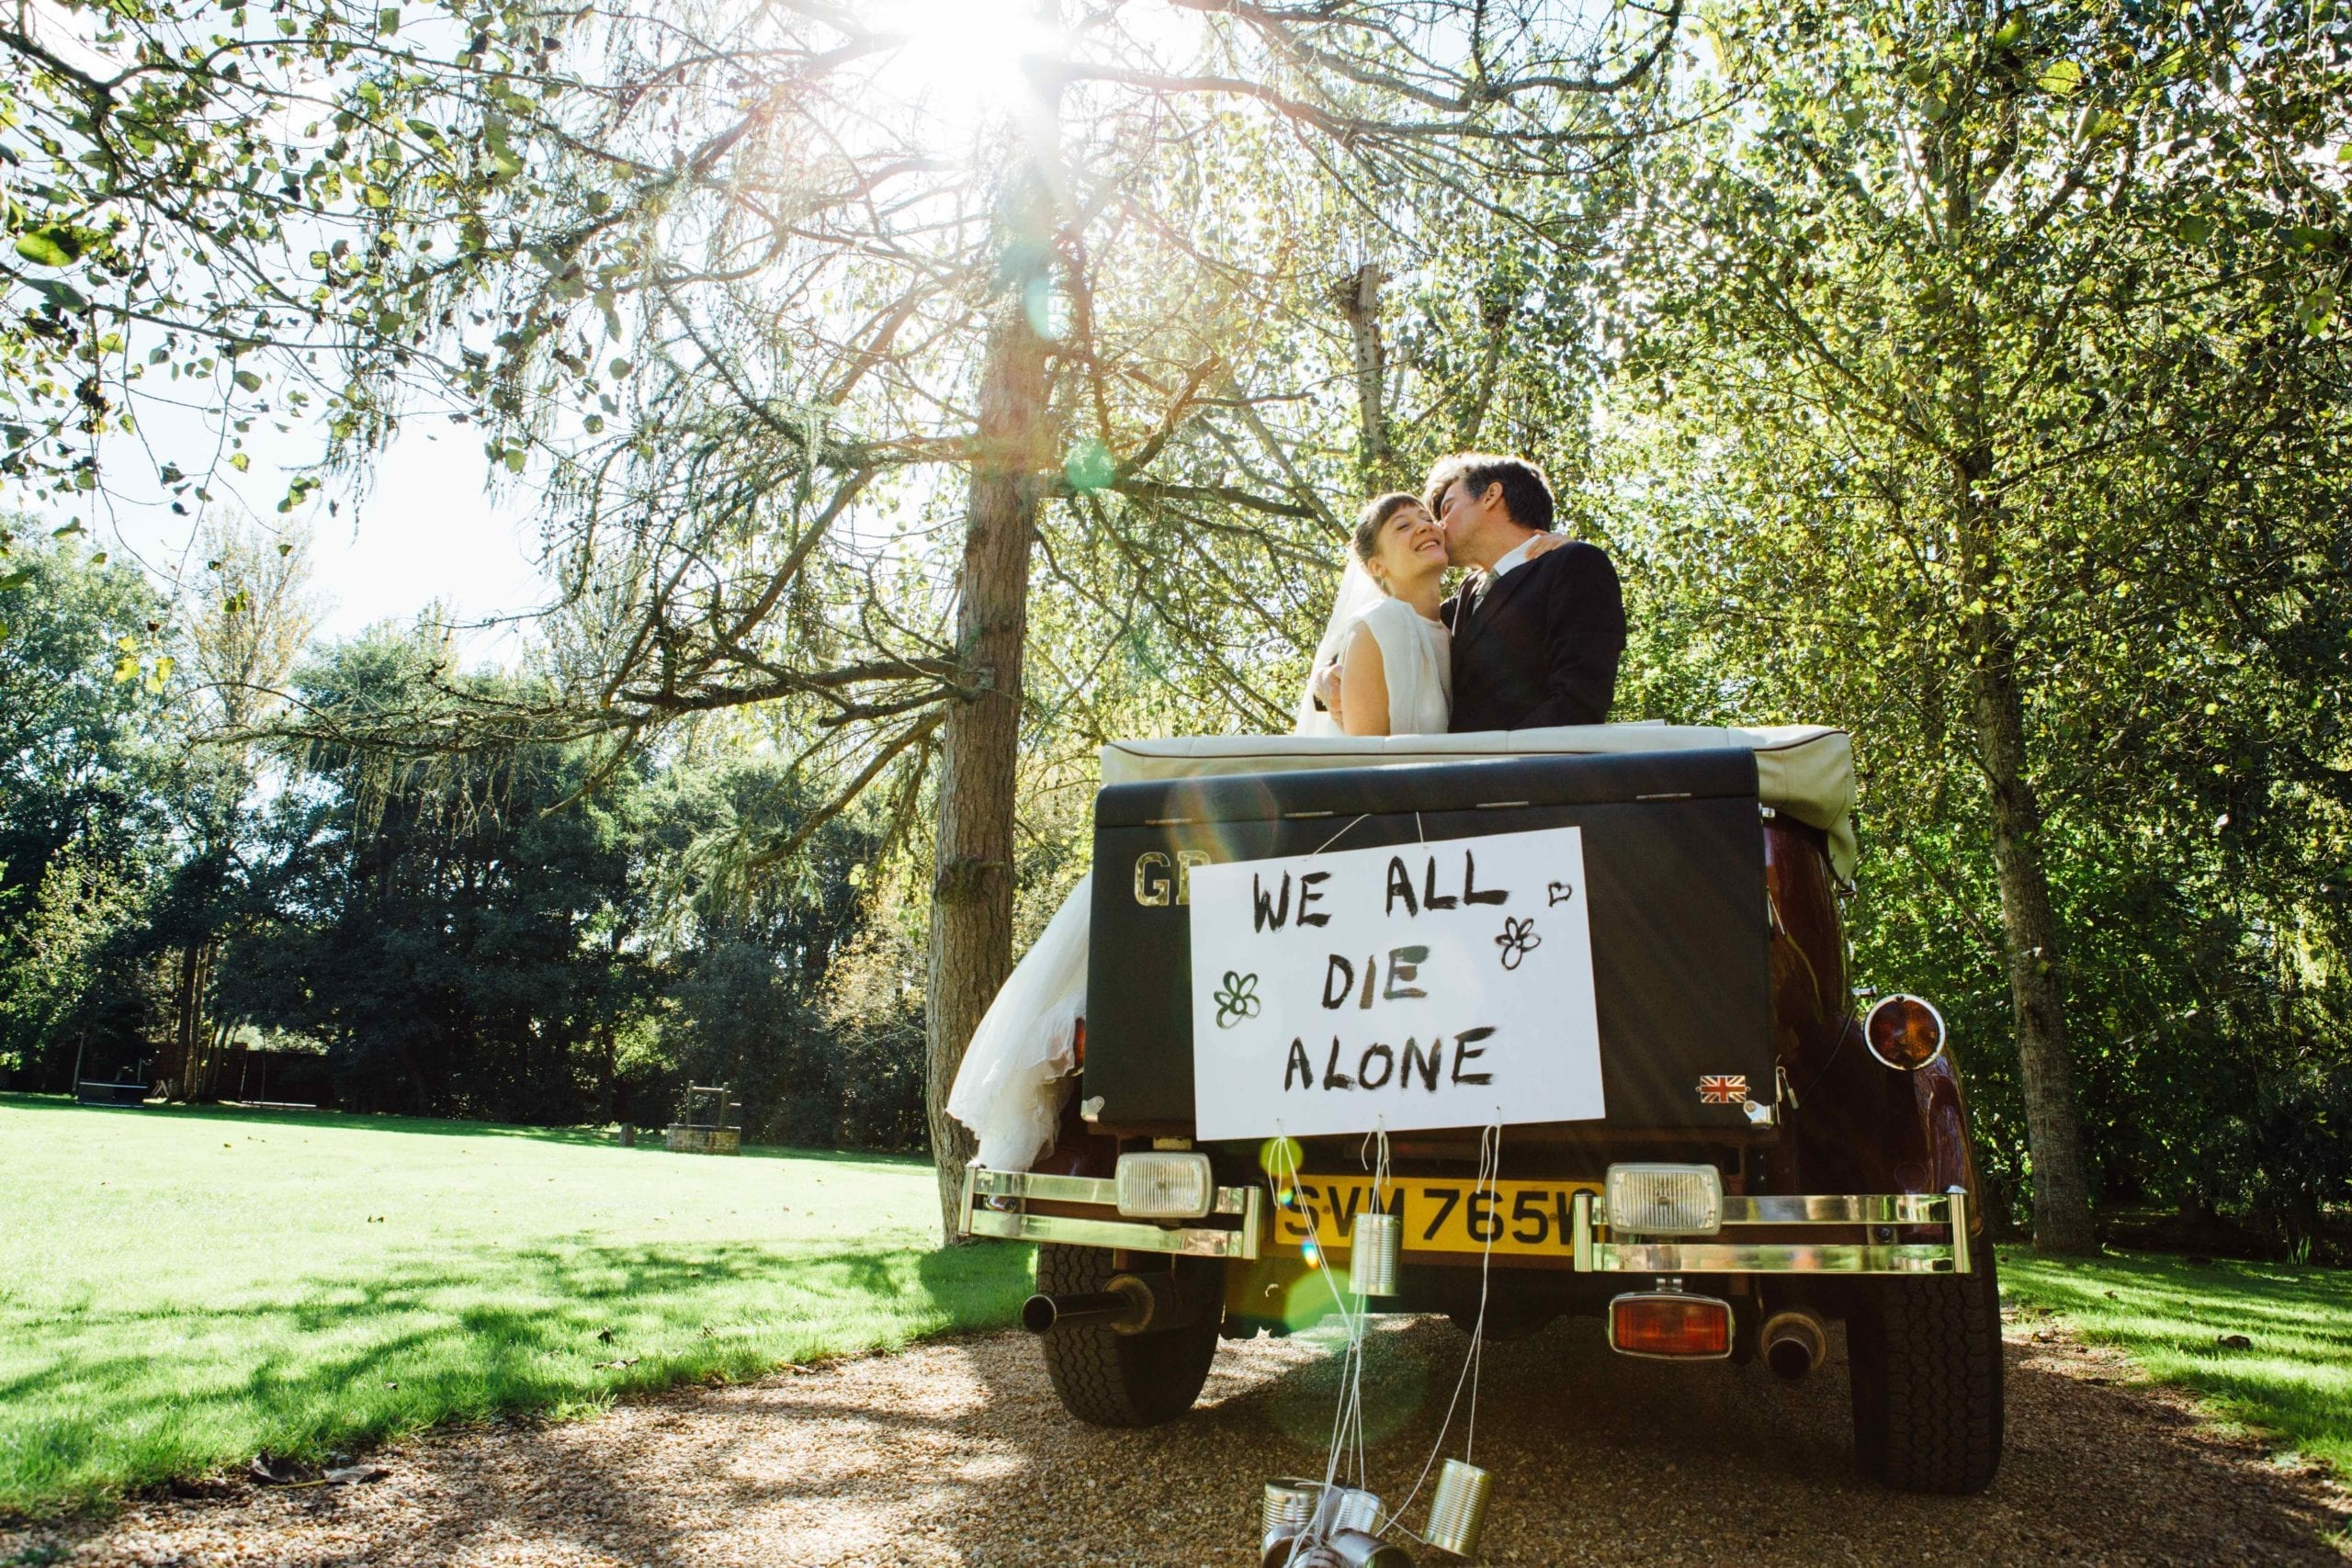 A wedding car with a couple kissing and the words 'We all die alone' written on the back